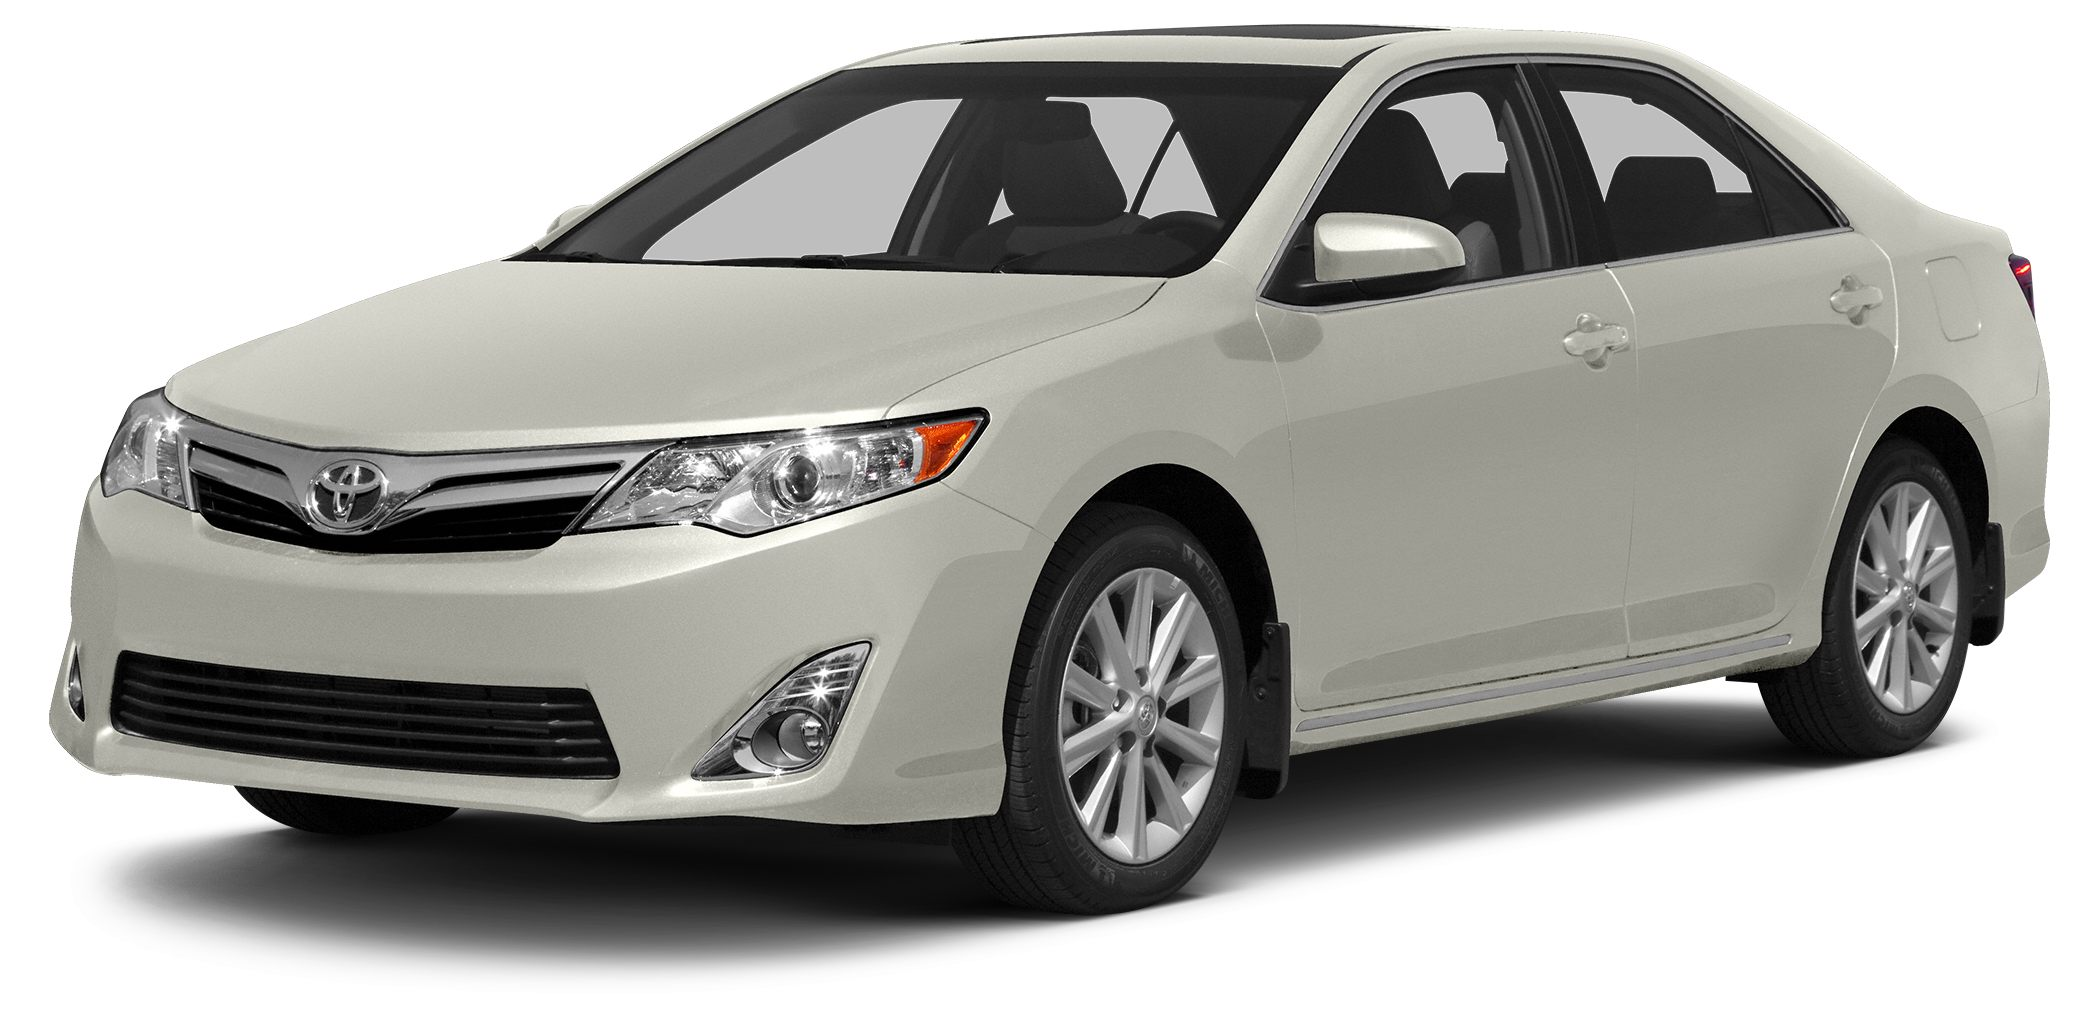 2014 Toyota Camry LE CARFAX 1-Owner ONLY 12827 Miles FUEL EFFICIENT 35 MPG Hwy25 MPG City CRE